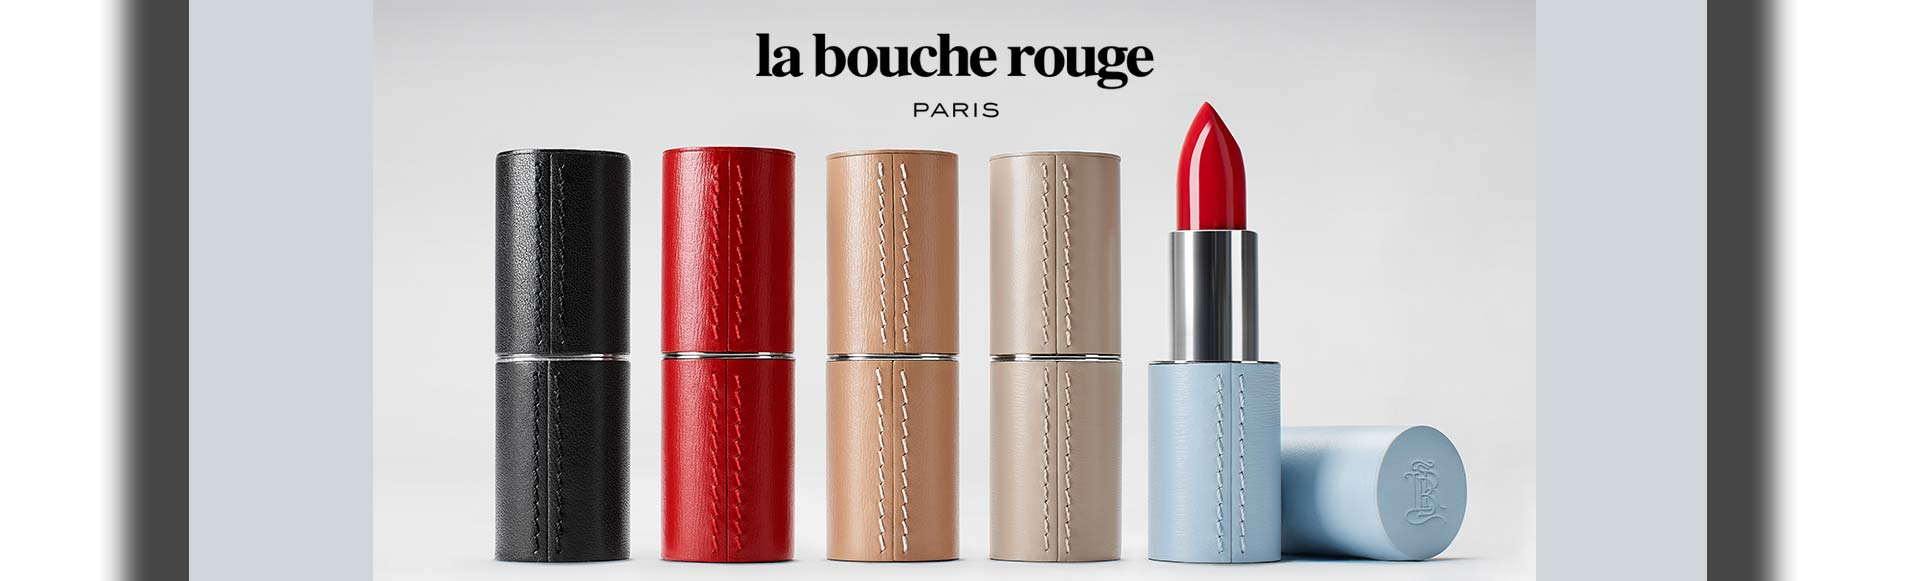 DNMAG-LA_BOUCHE_ROUGE-COSMETICS-BEAUTY